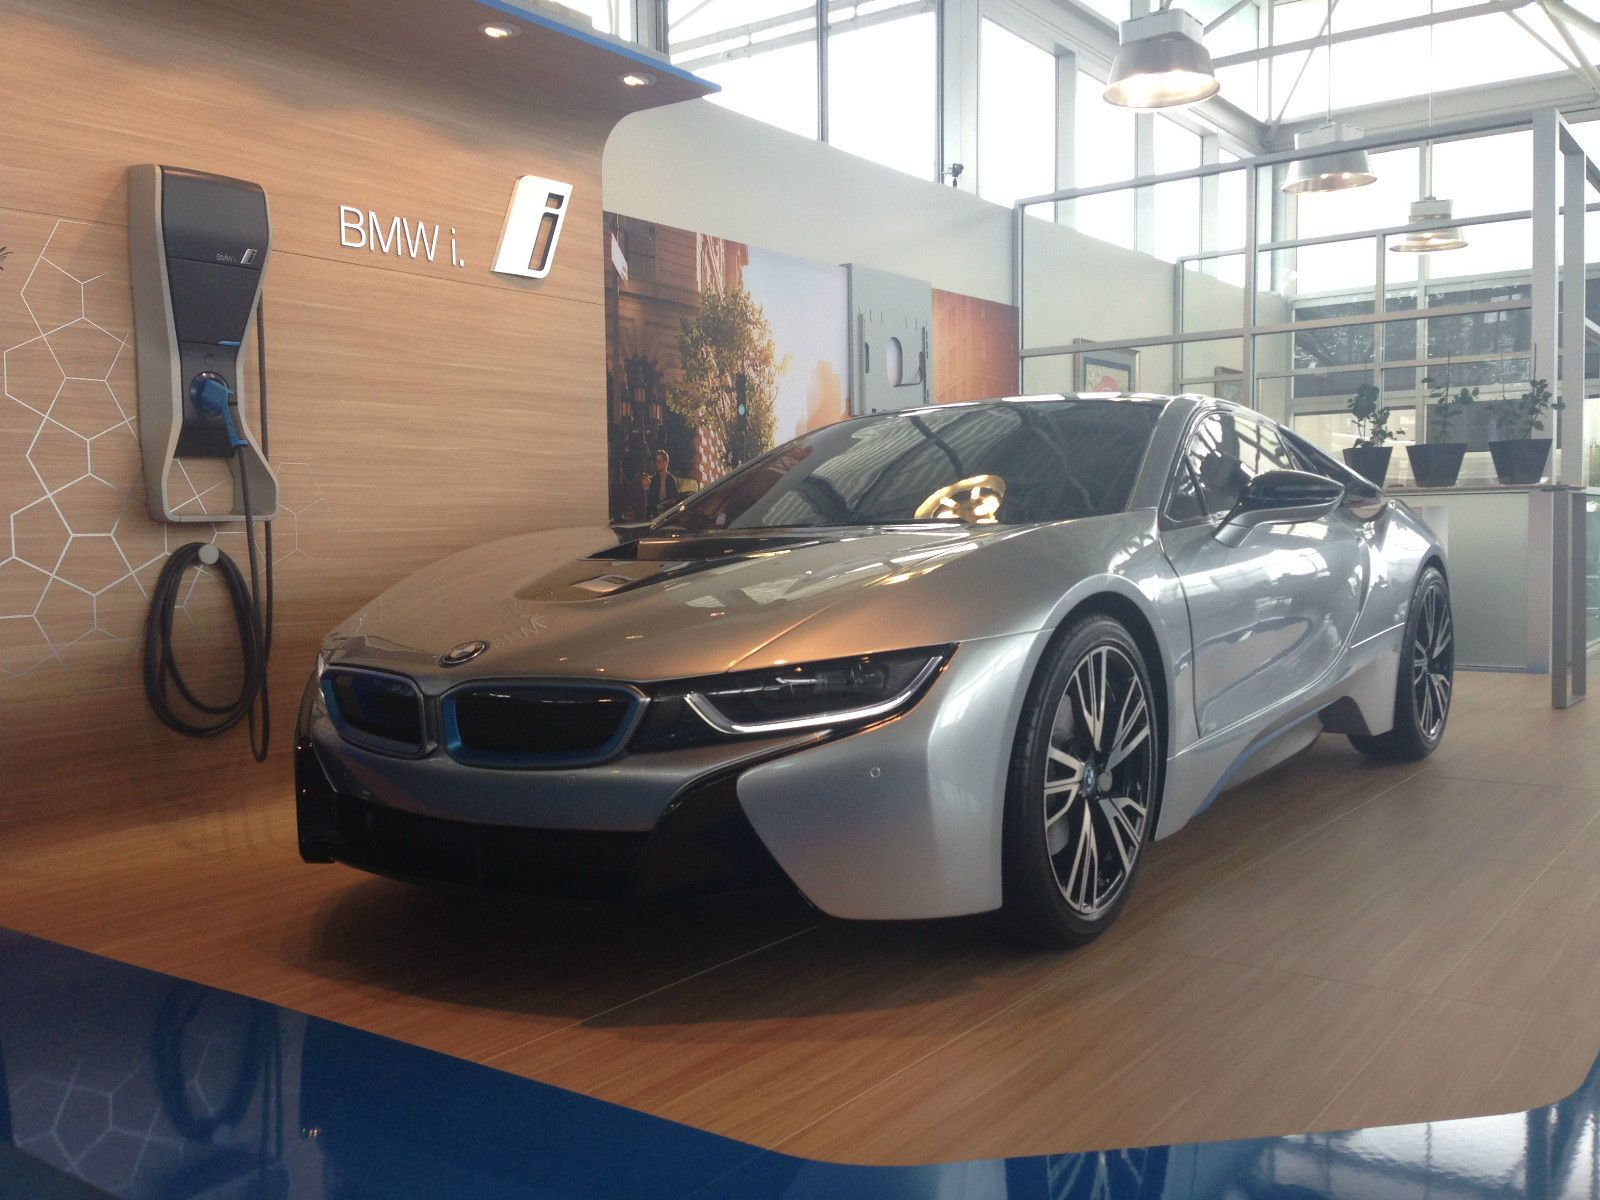 Want a Hollow Non Working BMW i8 Display Car for Your Living Room